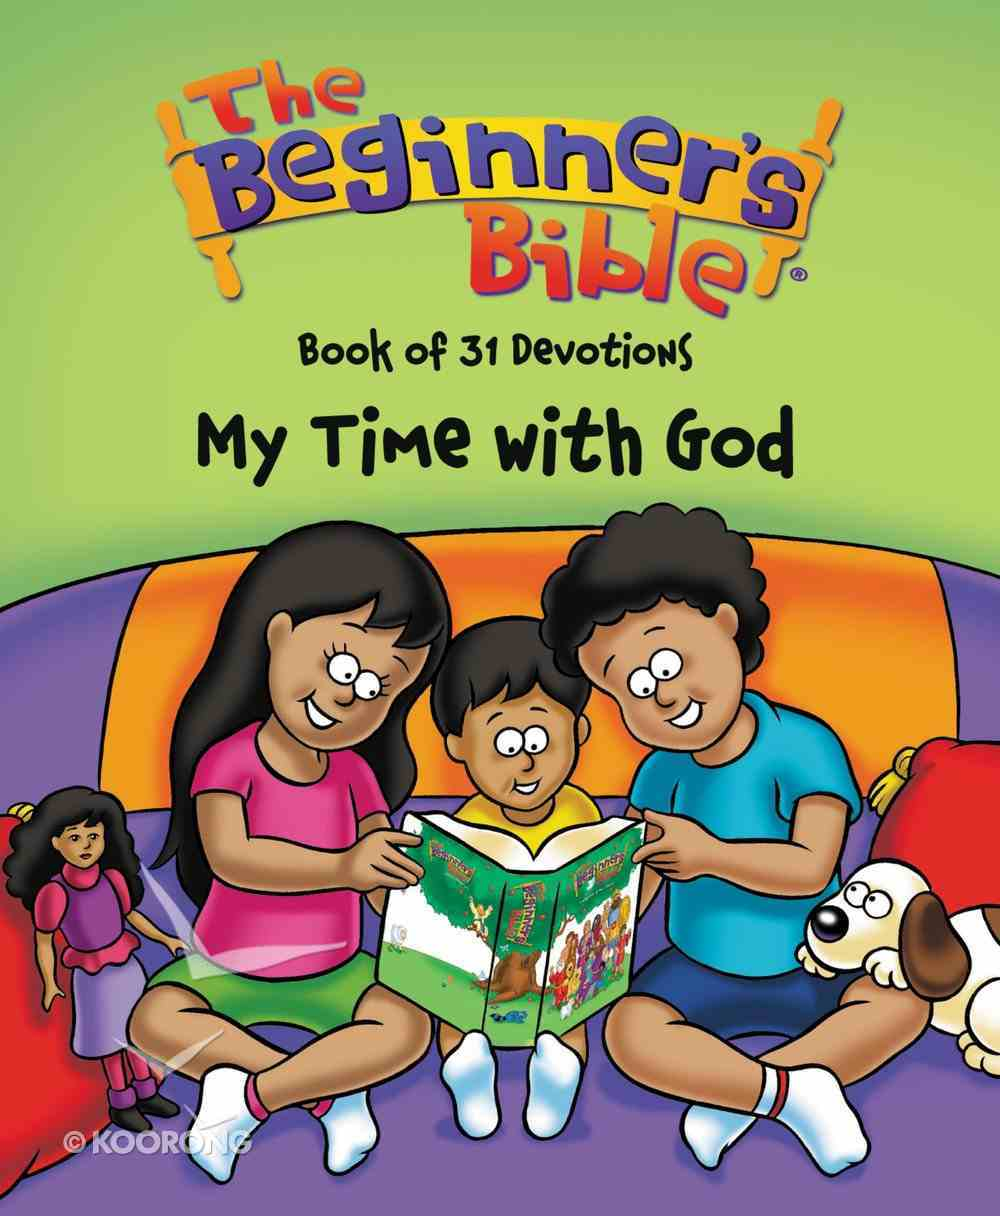 My Time With God Book of Devotions (Beginner's Bible Series) Paperback